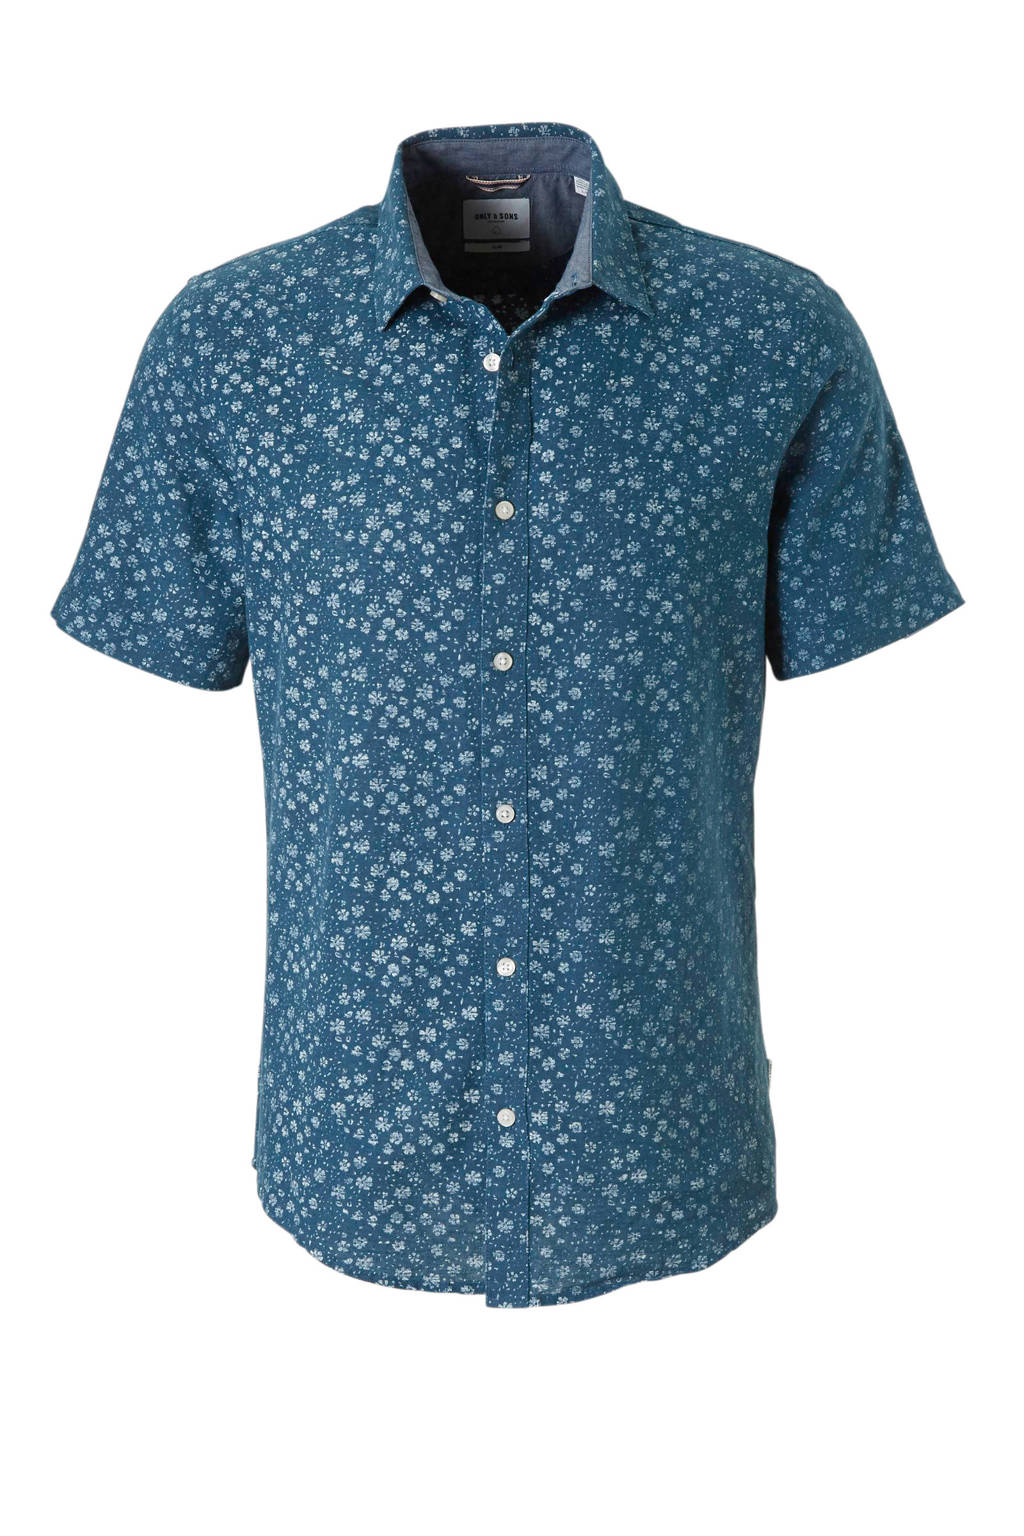 ONLY & SONS slim fit overhemd, Blauw/wit